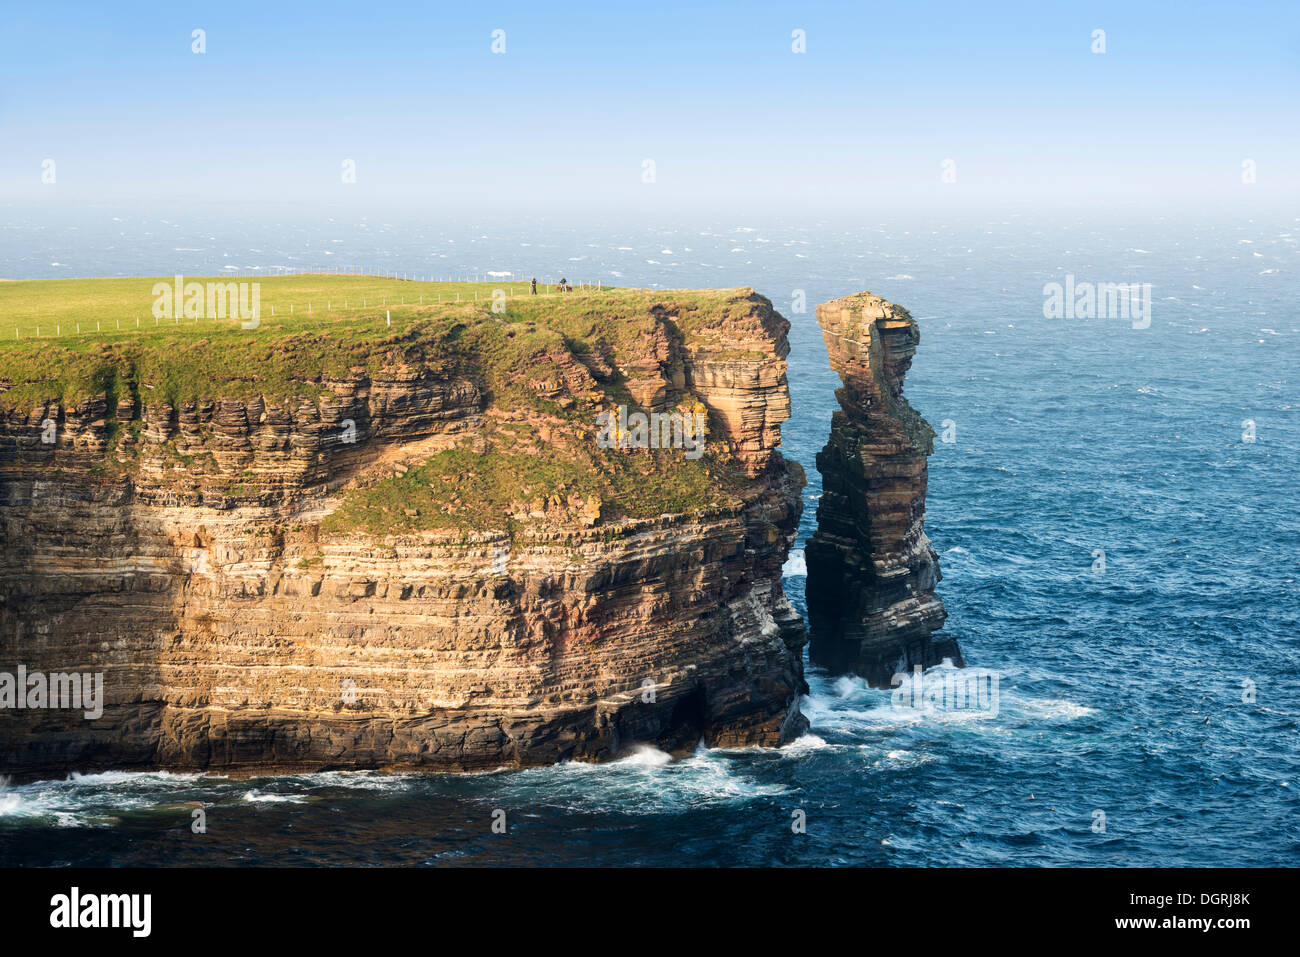 Jagged rocks on the coast of Duncansby Head, County of Caithness, Scotland, United Kingdom, Europe - Stock Image